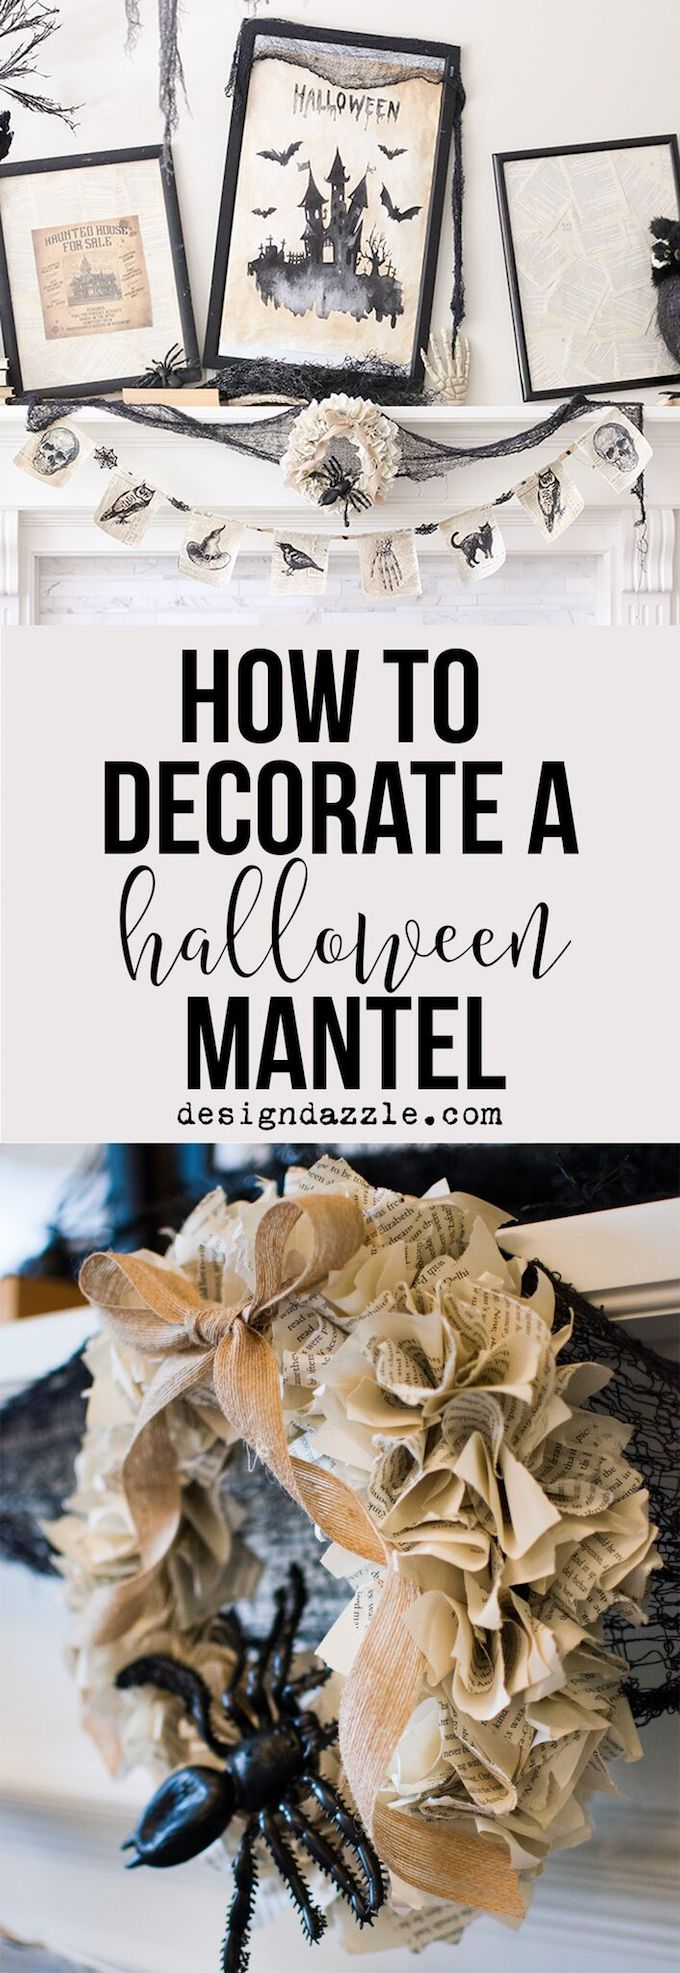 5 minute halloween mantel design dazzle for 5 minute halloween decorations